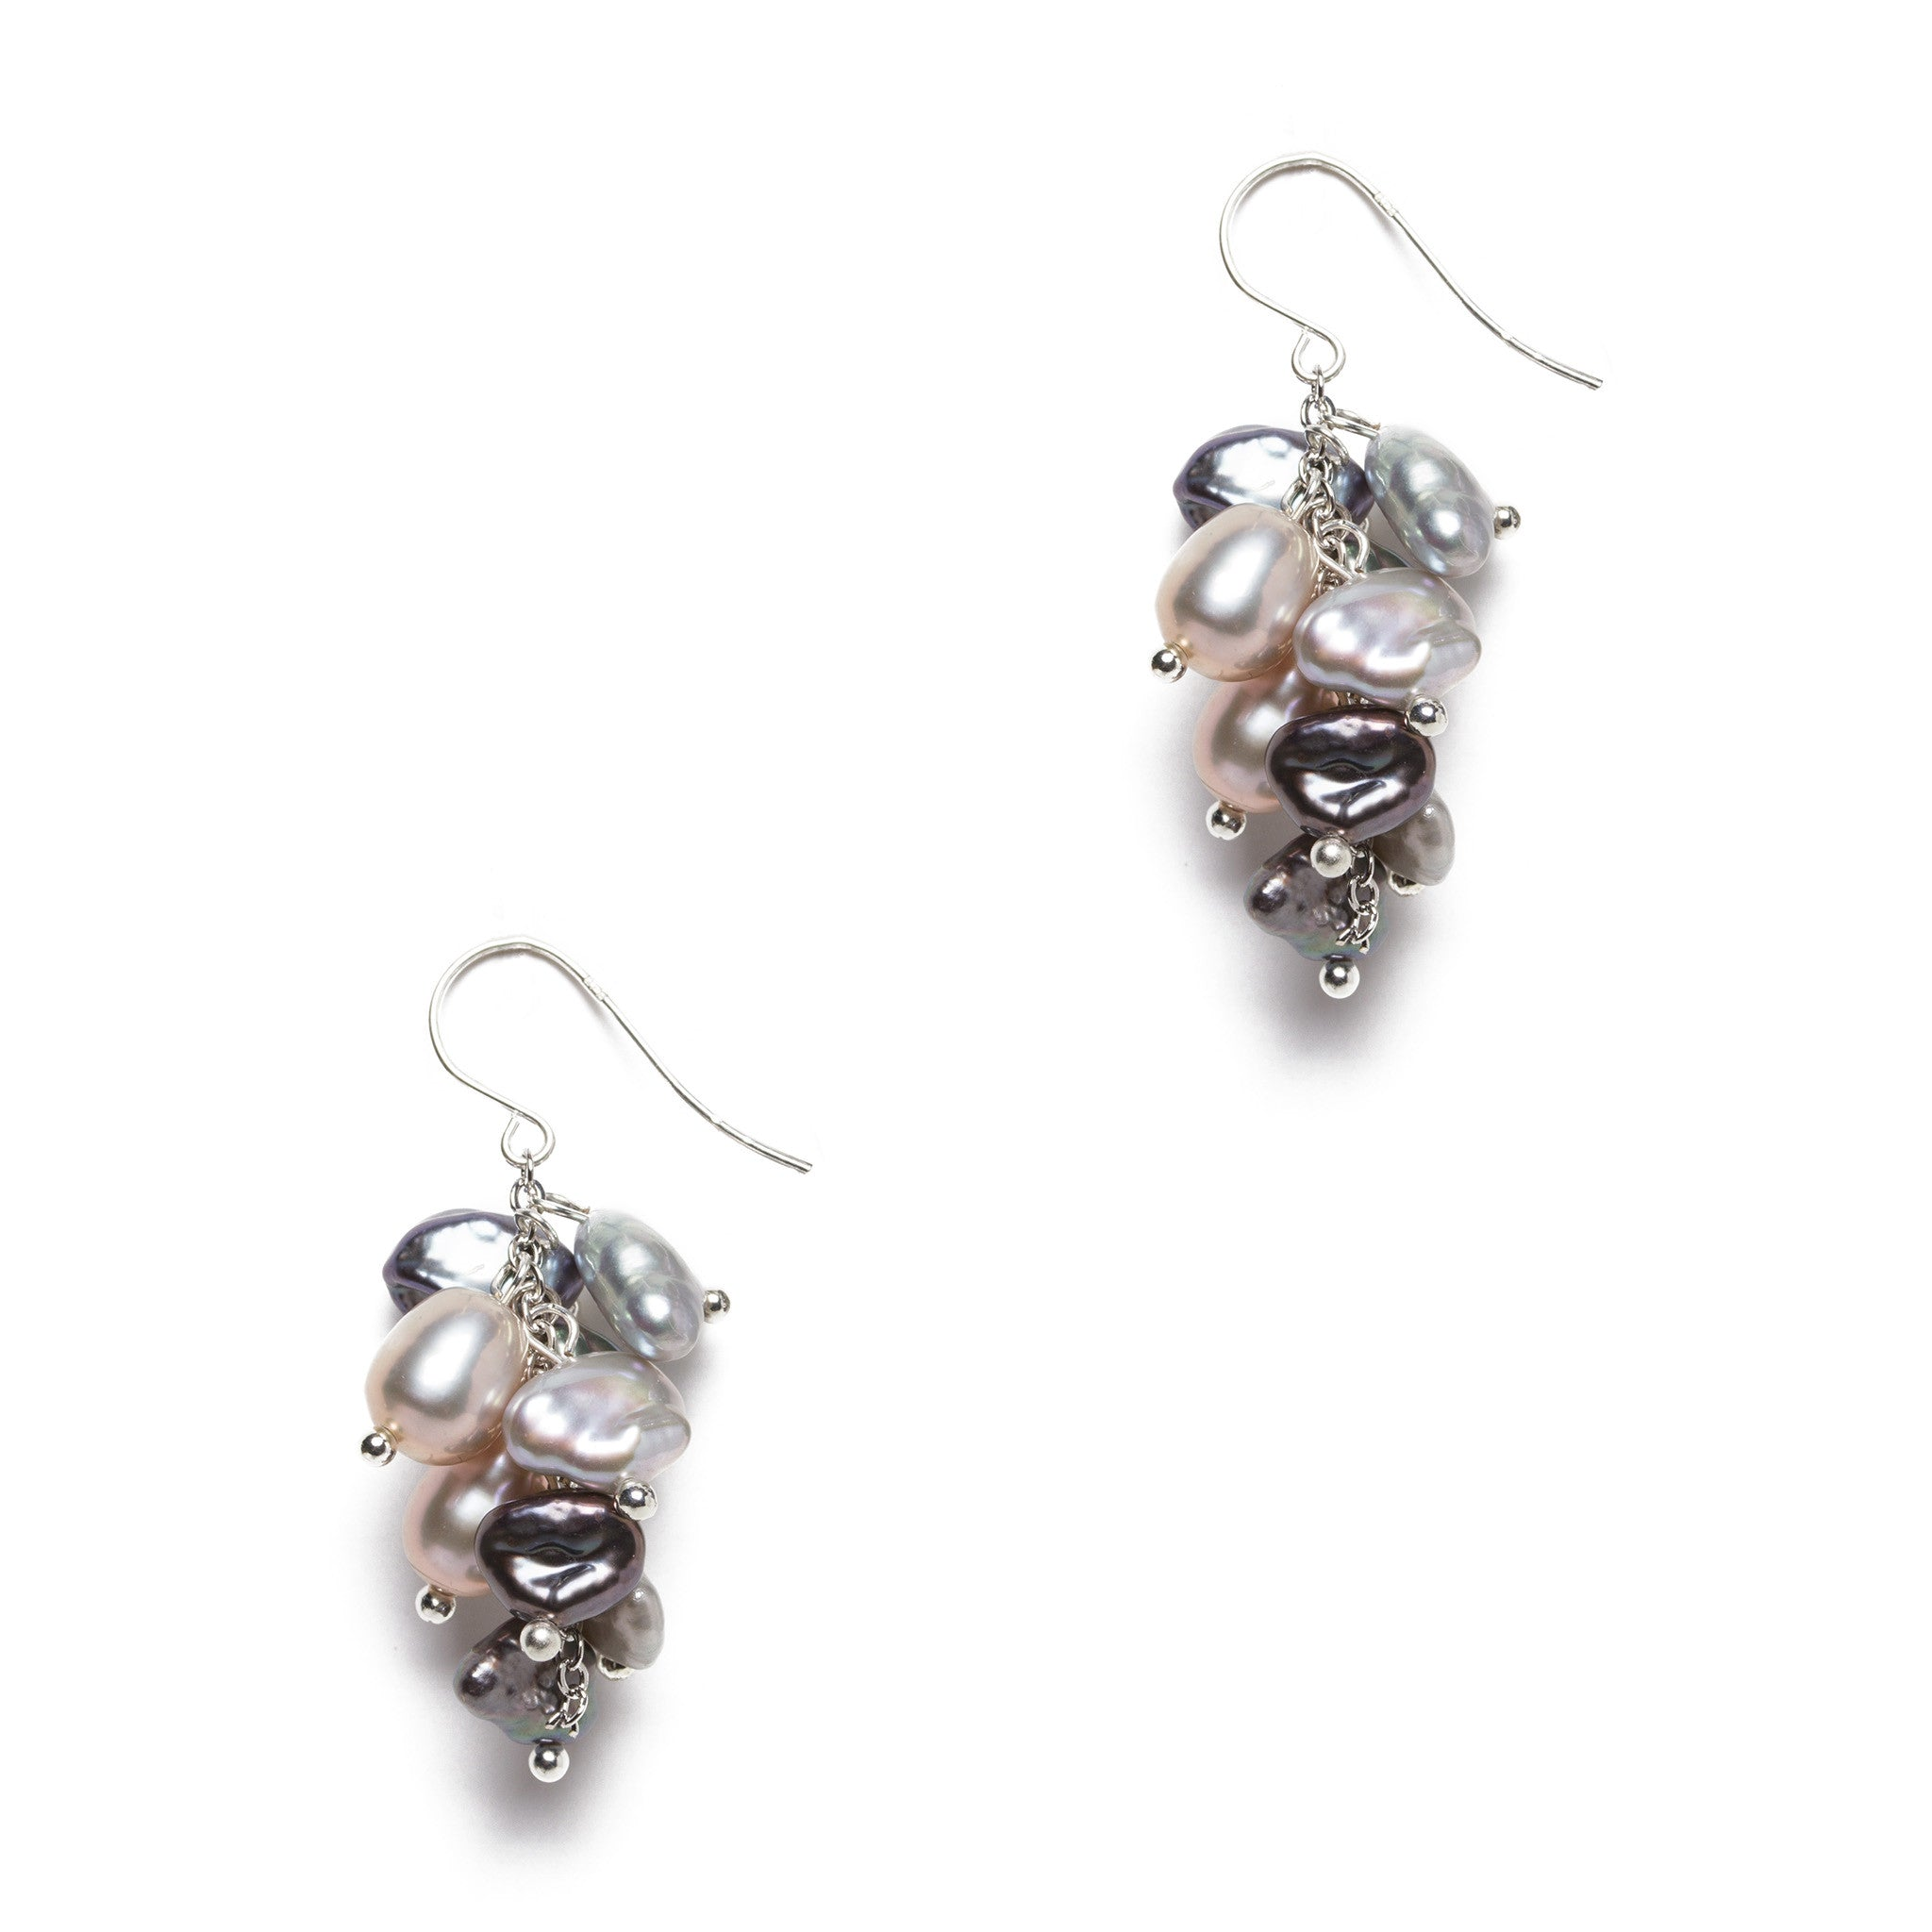 product earrings of white mother tobi us peral pearl